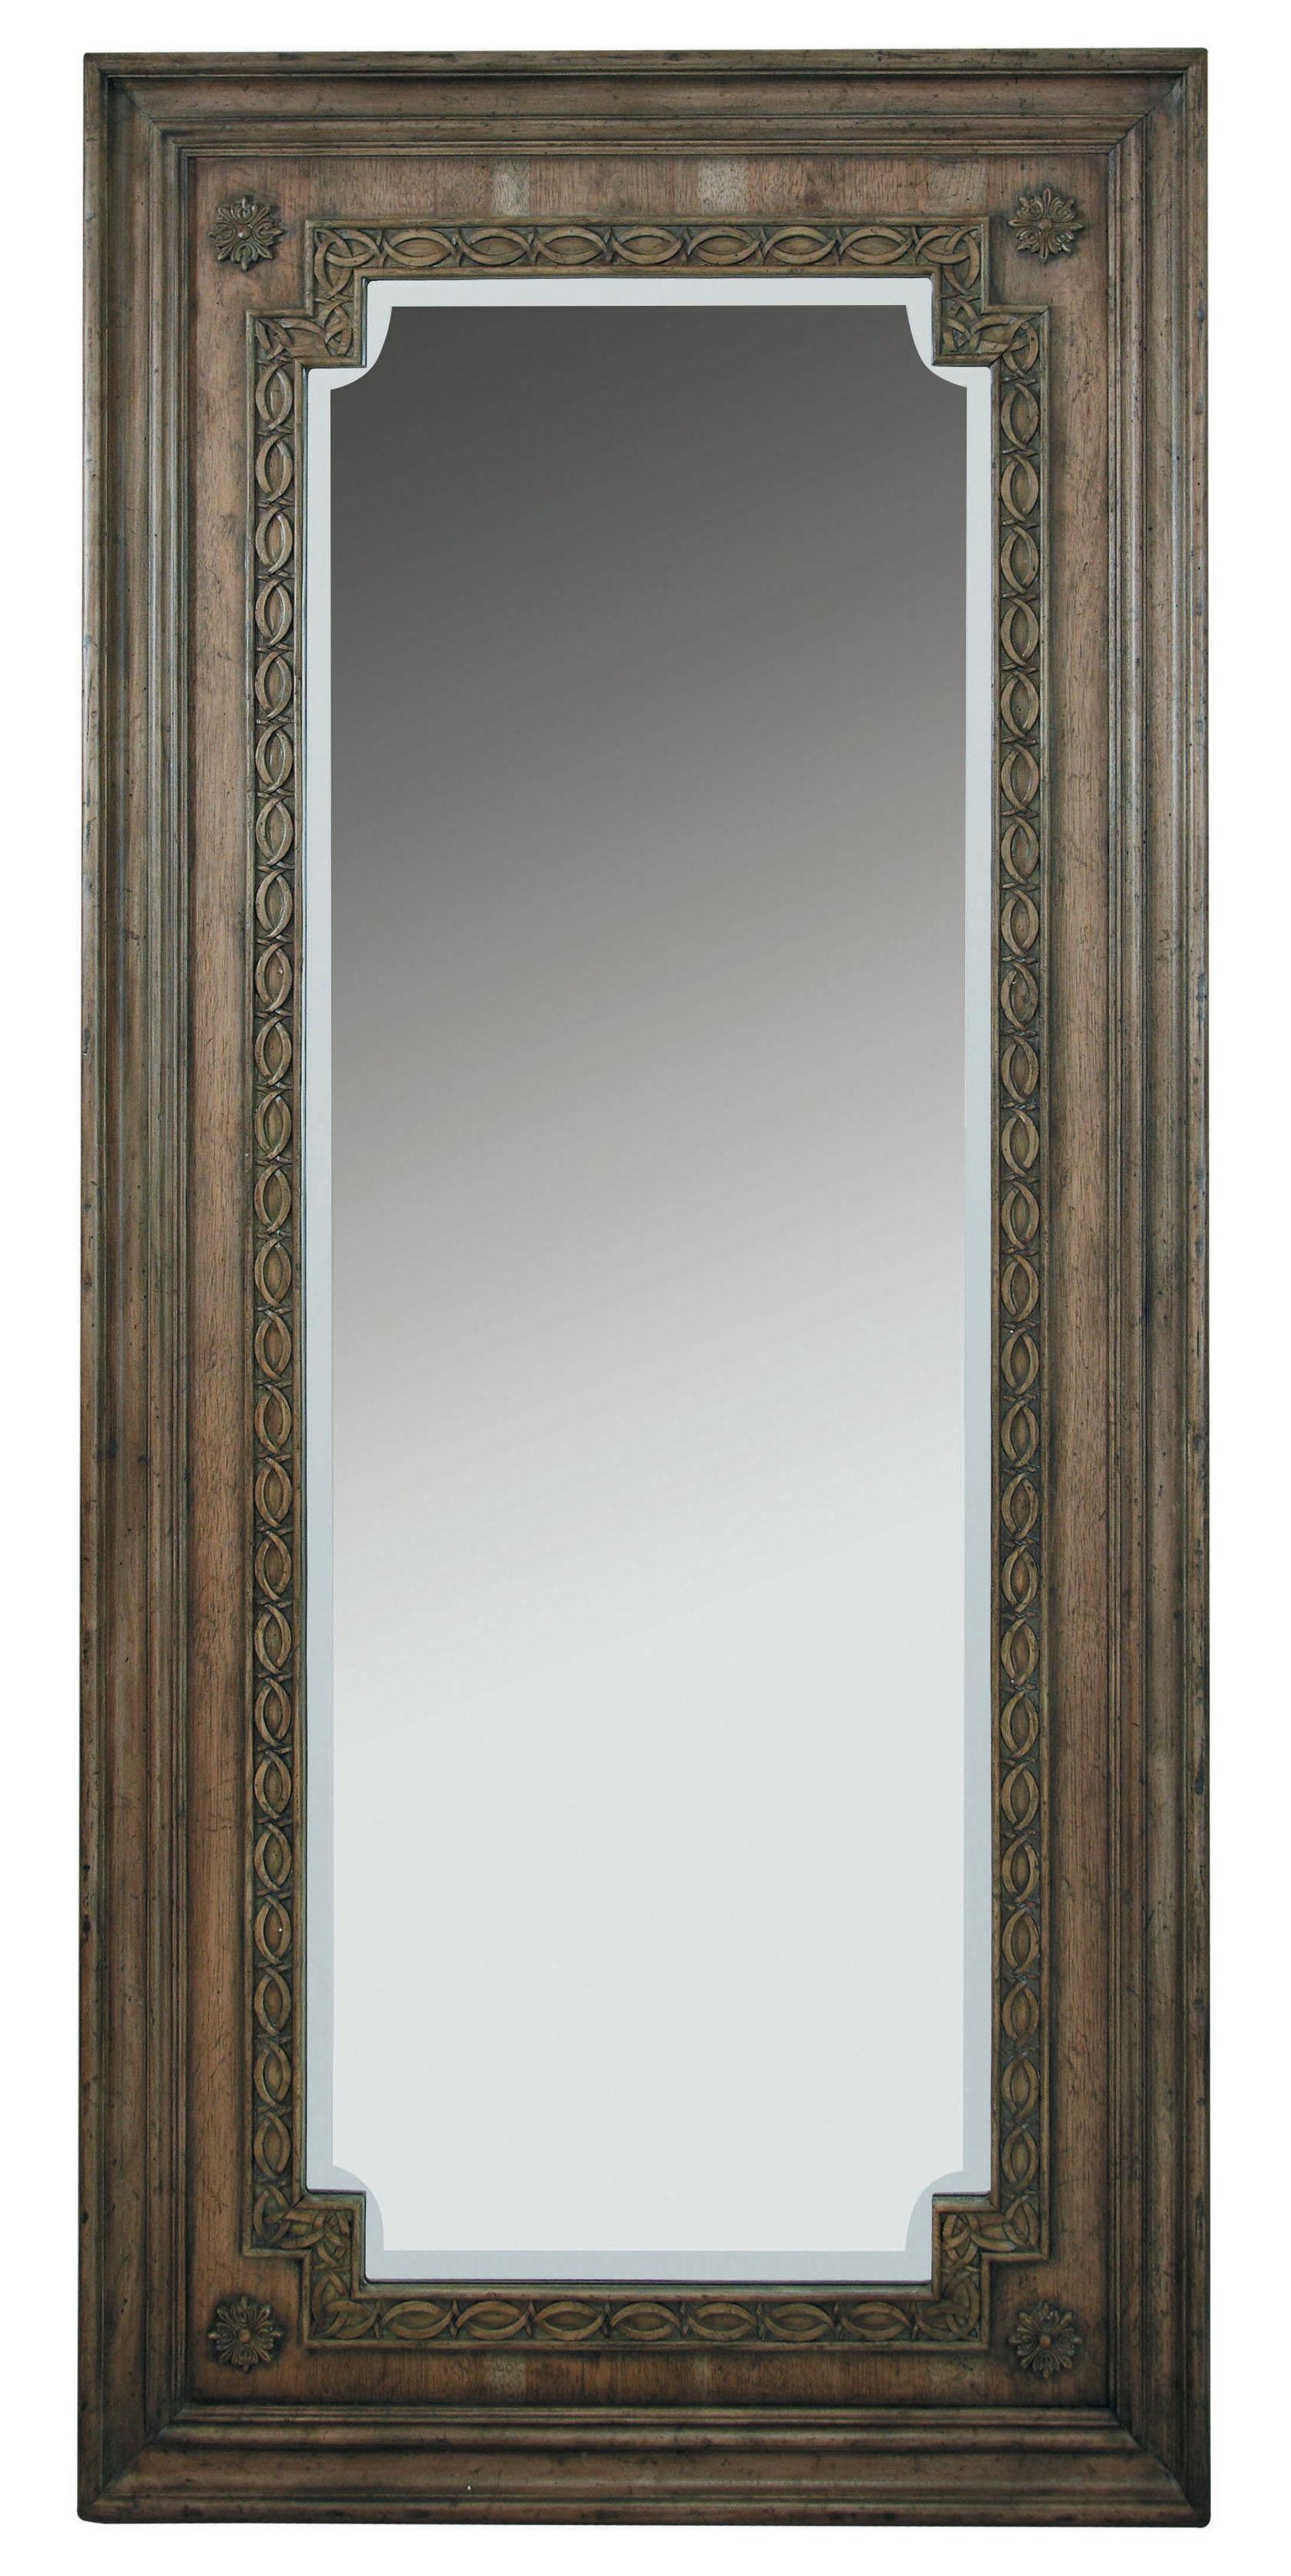 Pulaski Furniture Accentrics Home Avignon Floor Mirror - Item Number: 208025